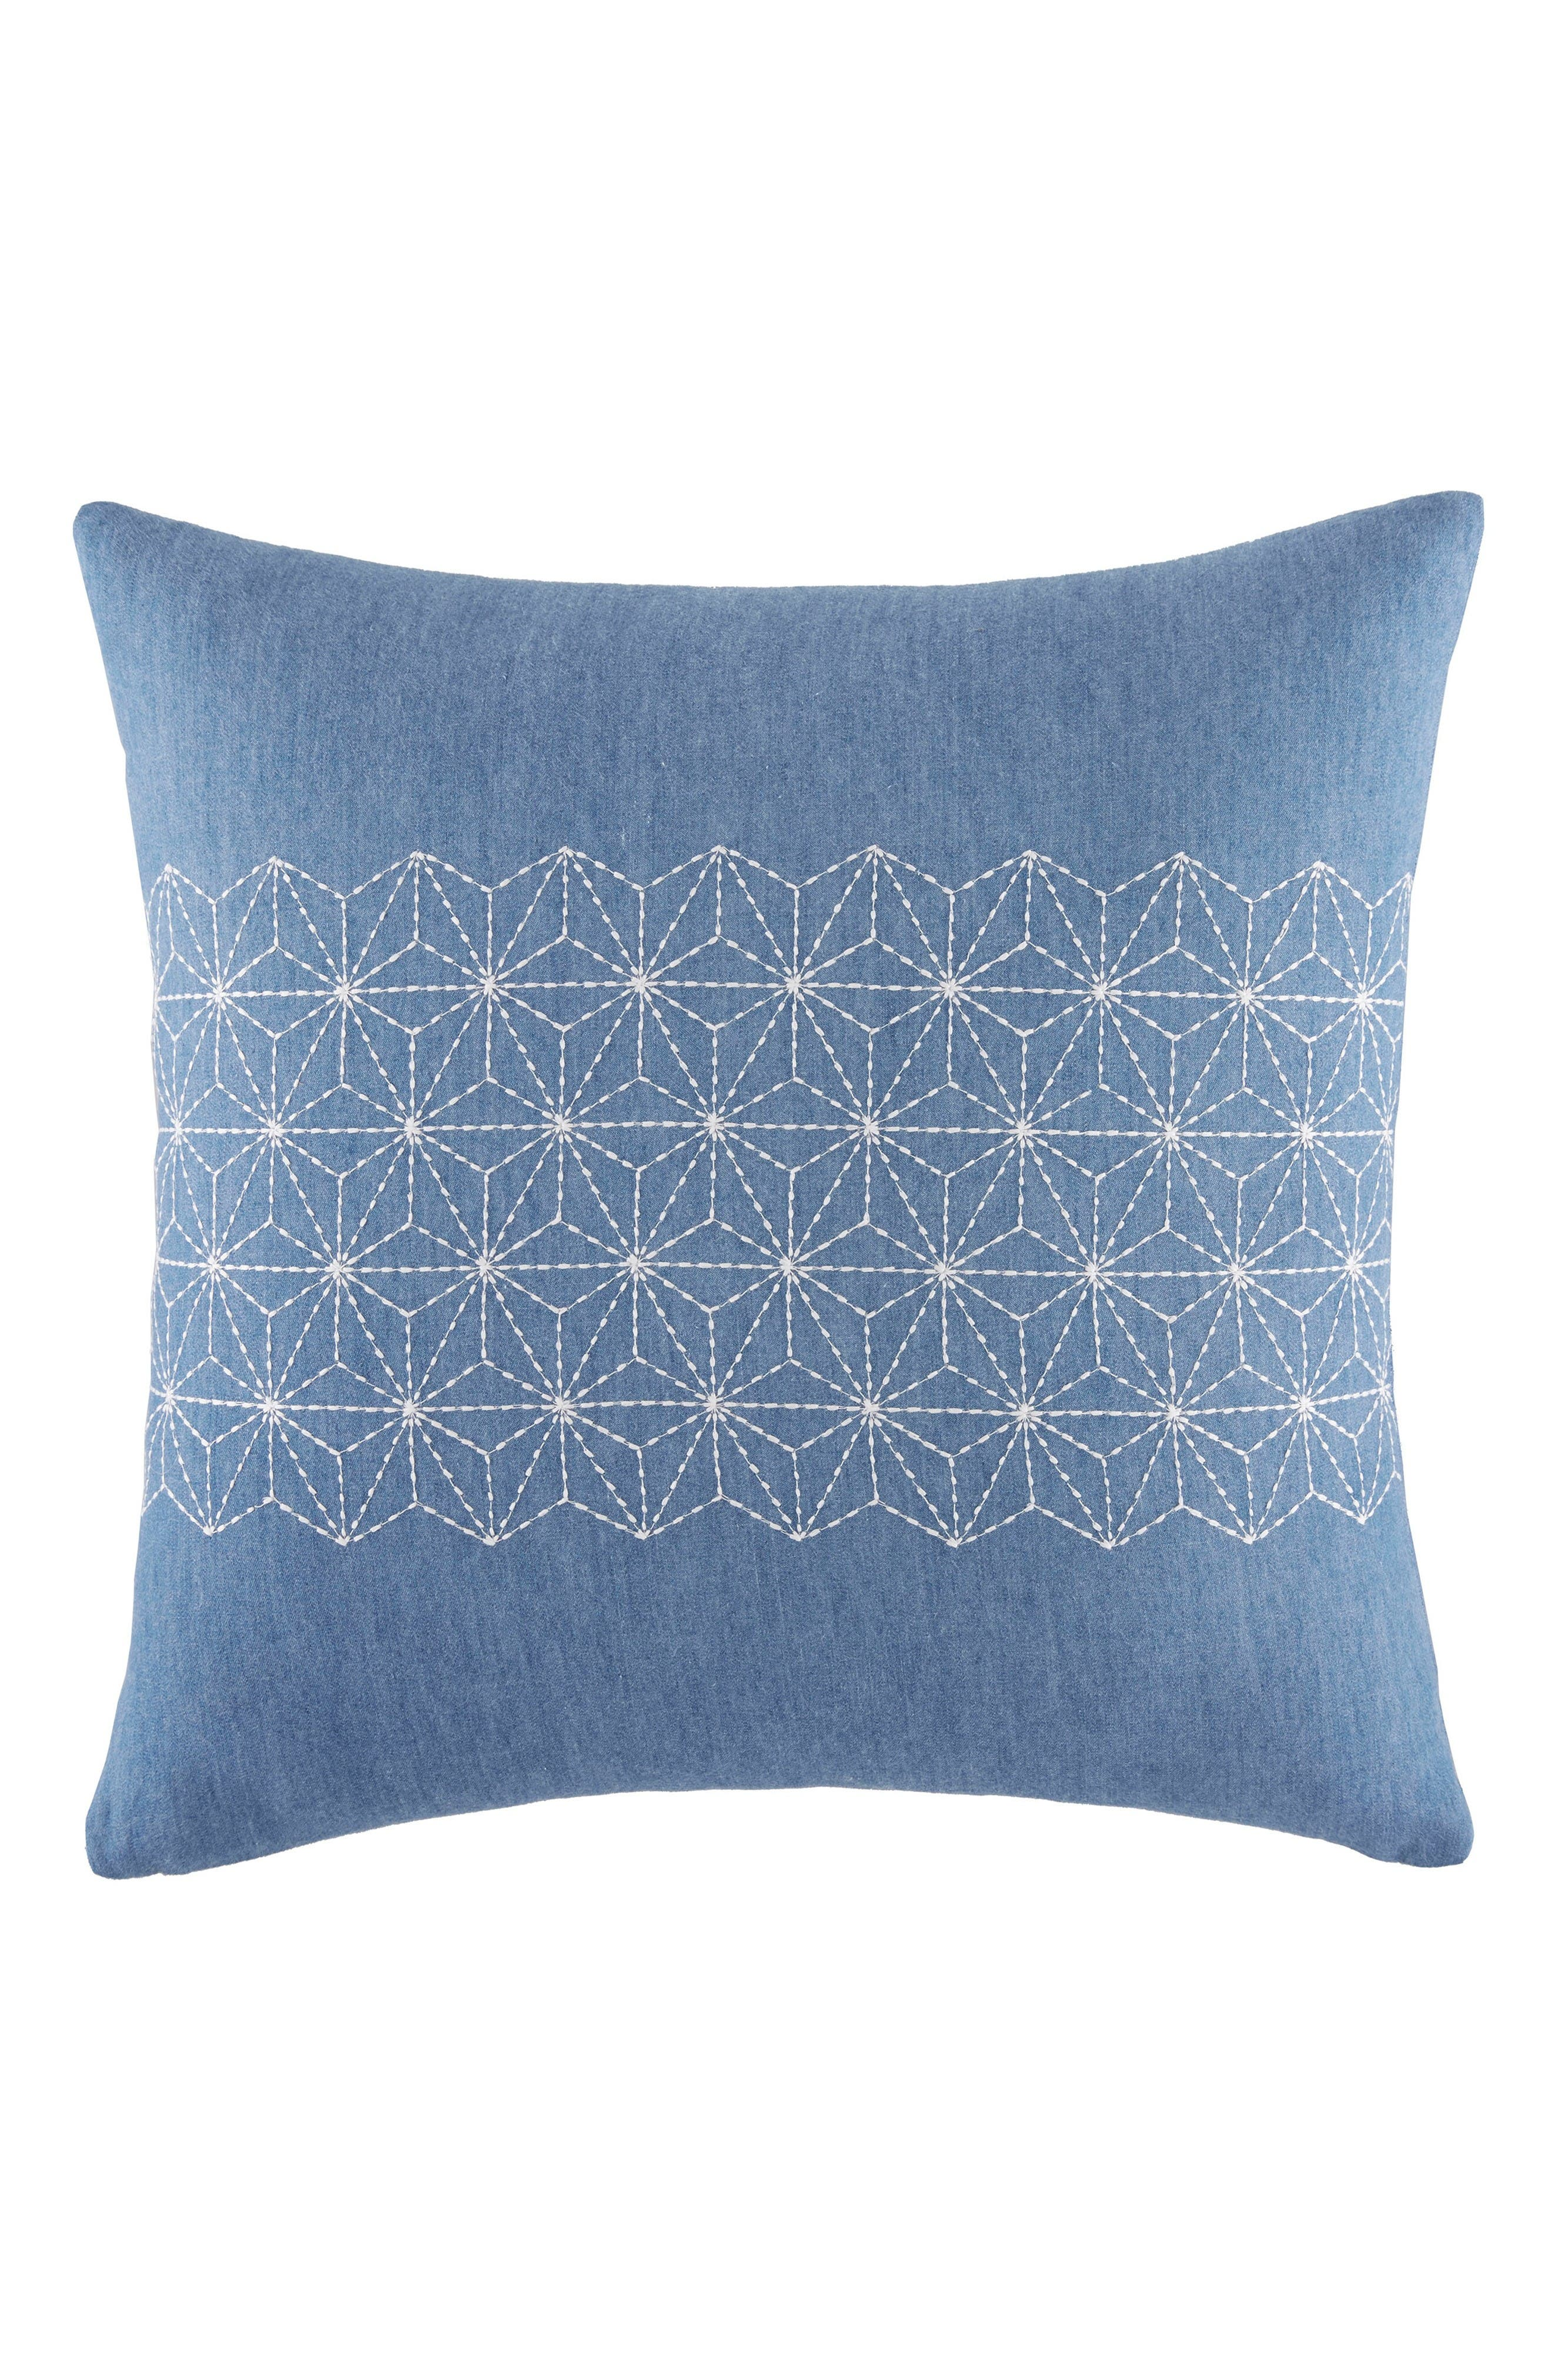 Main Image - Tommy Hilfiger Geo Stitched Accent Pillow